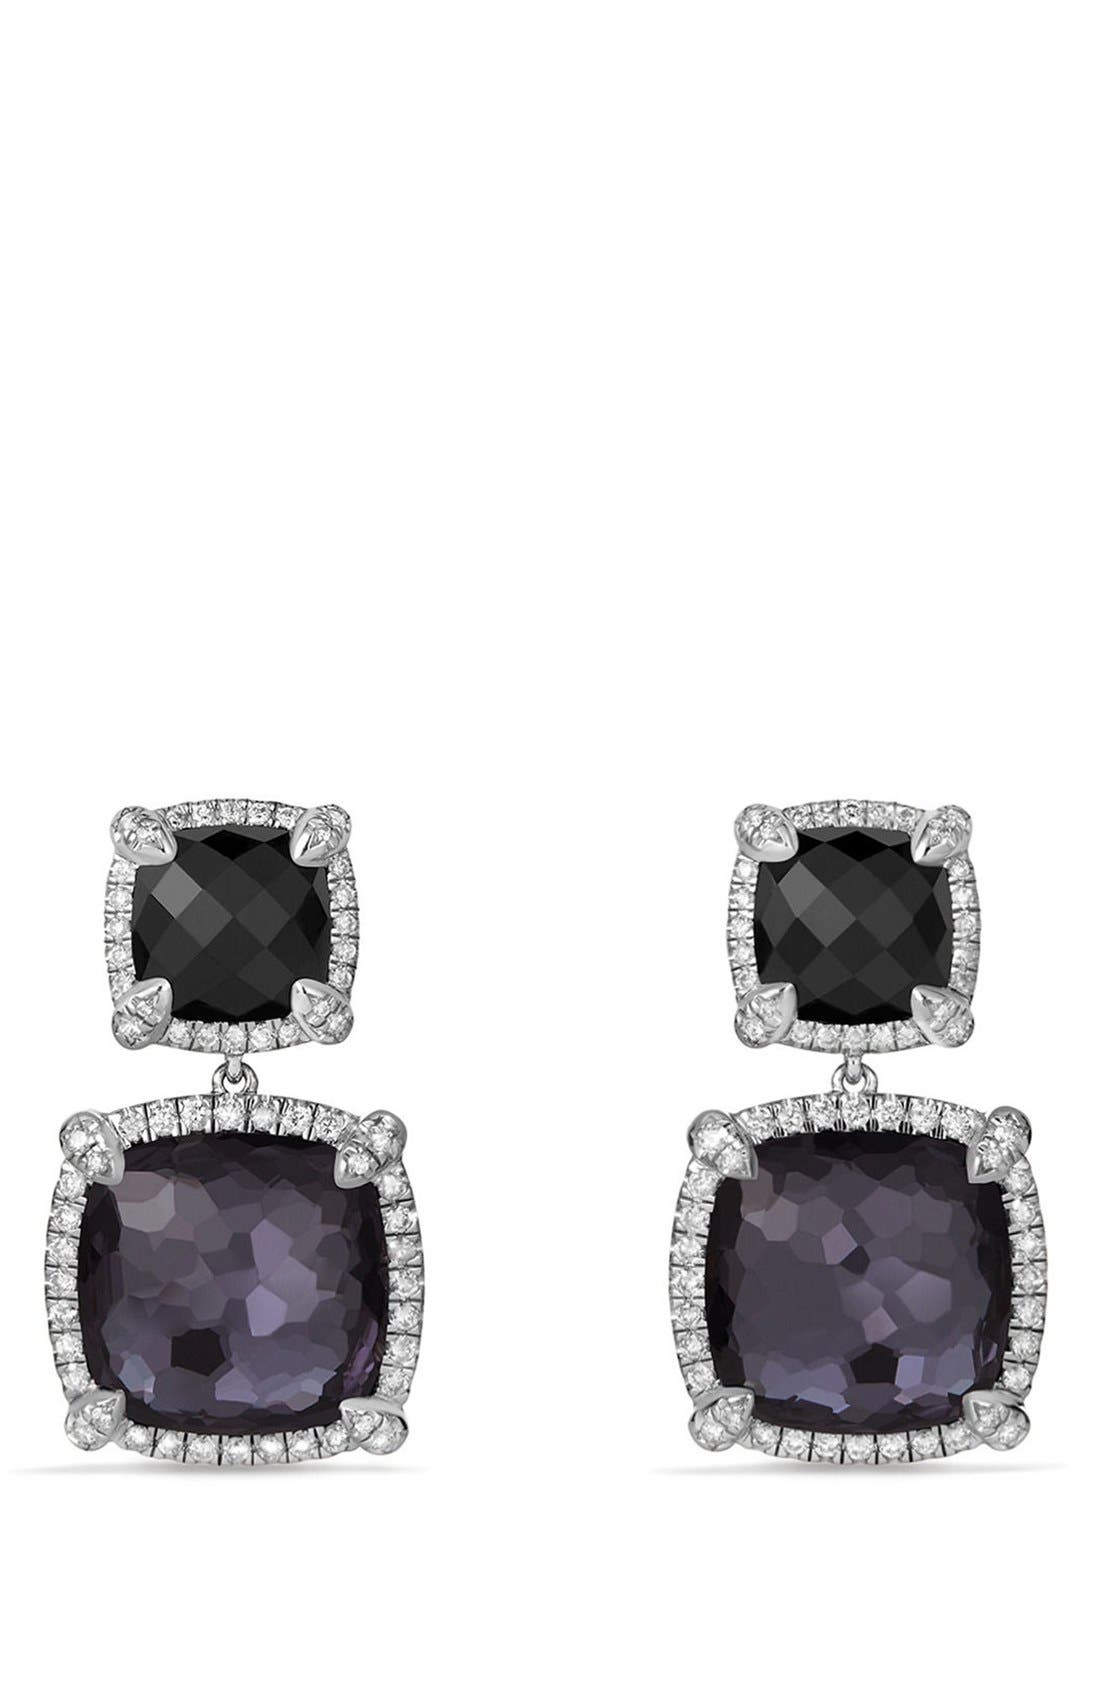 'Châtelaine' Pavé Bezel Double Drop Earrings with Diamonds,                         Main,                         color, Black Onyx